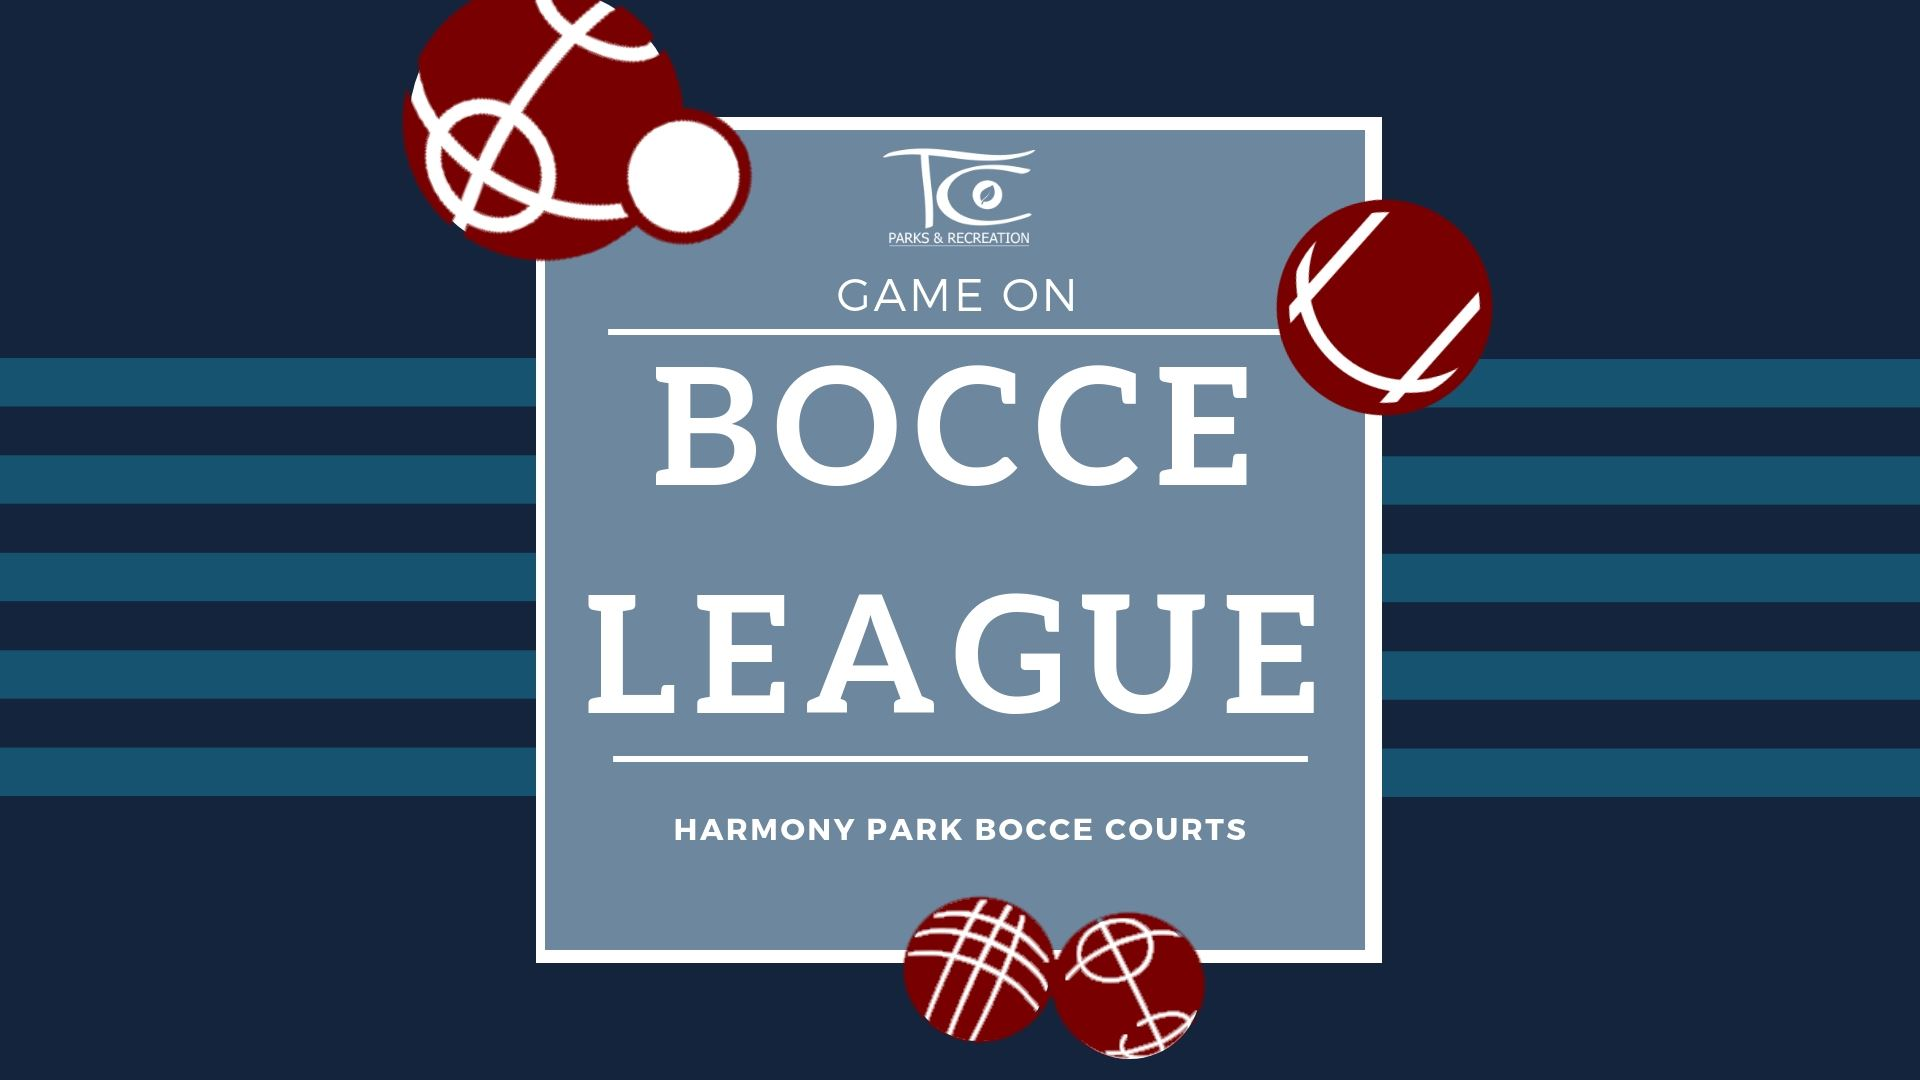 Bocce League - Banner